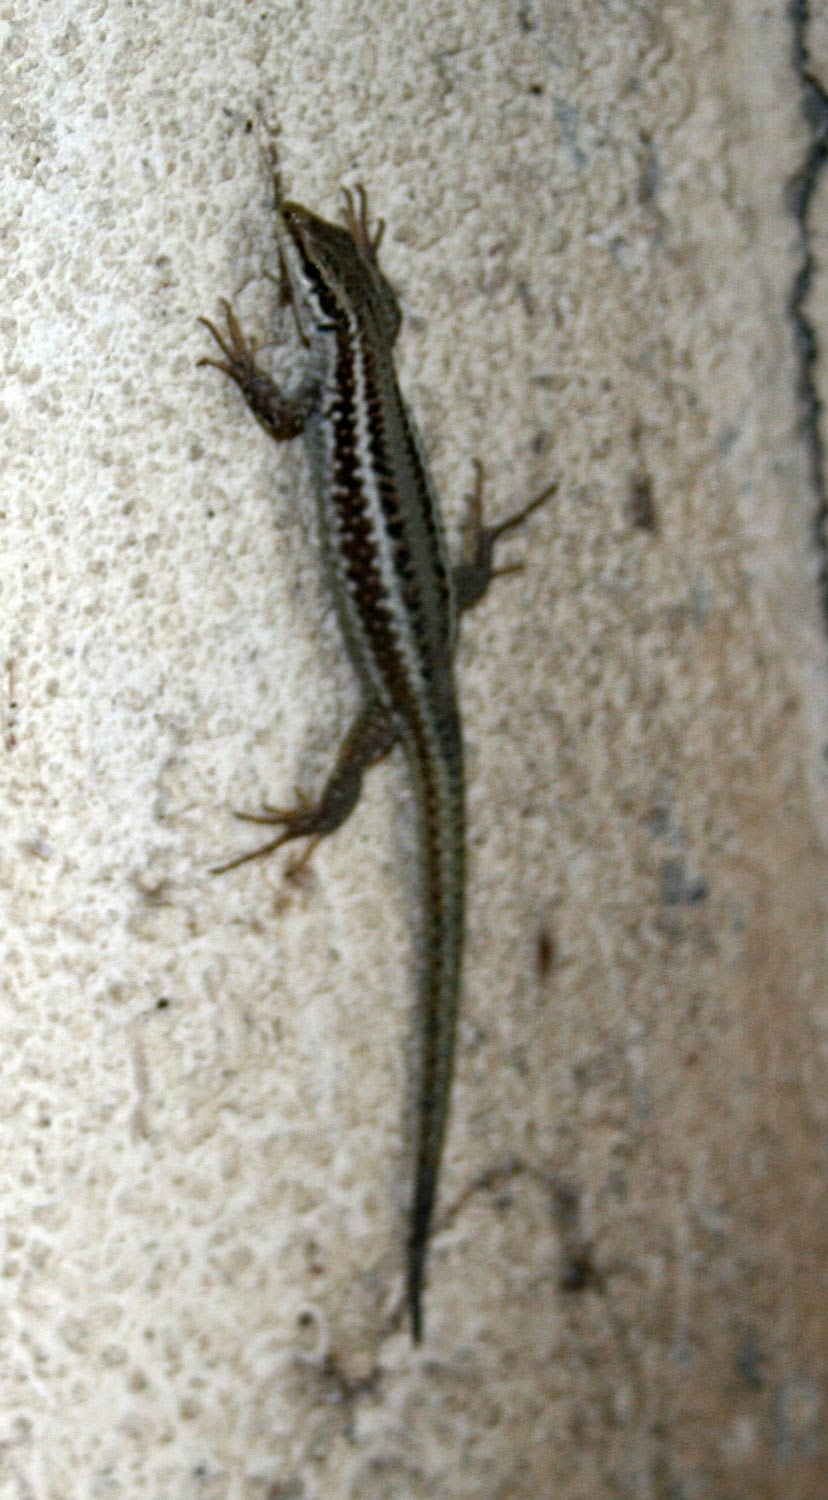 Little lizard on the wall